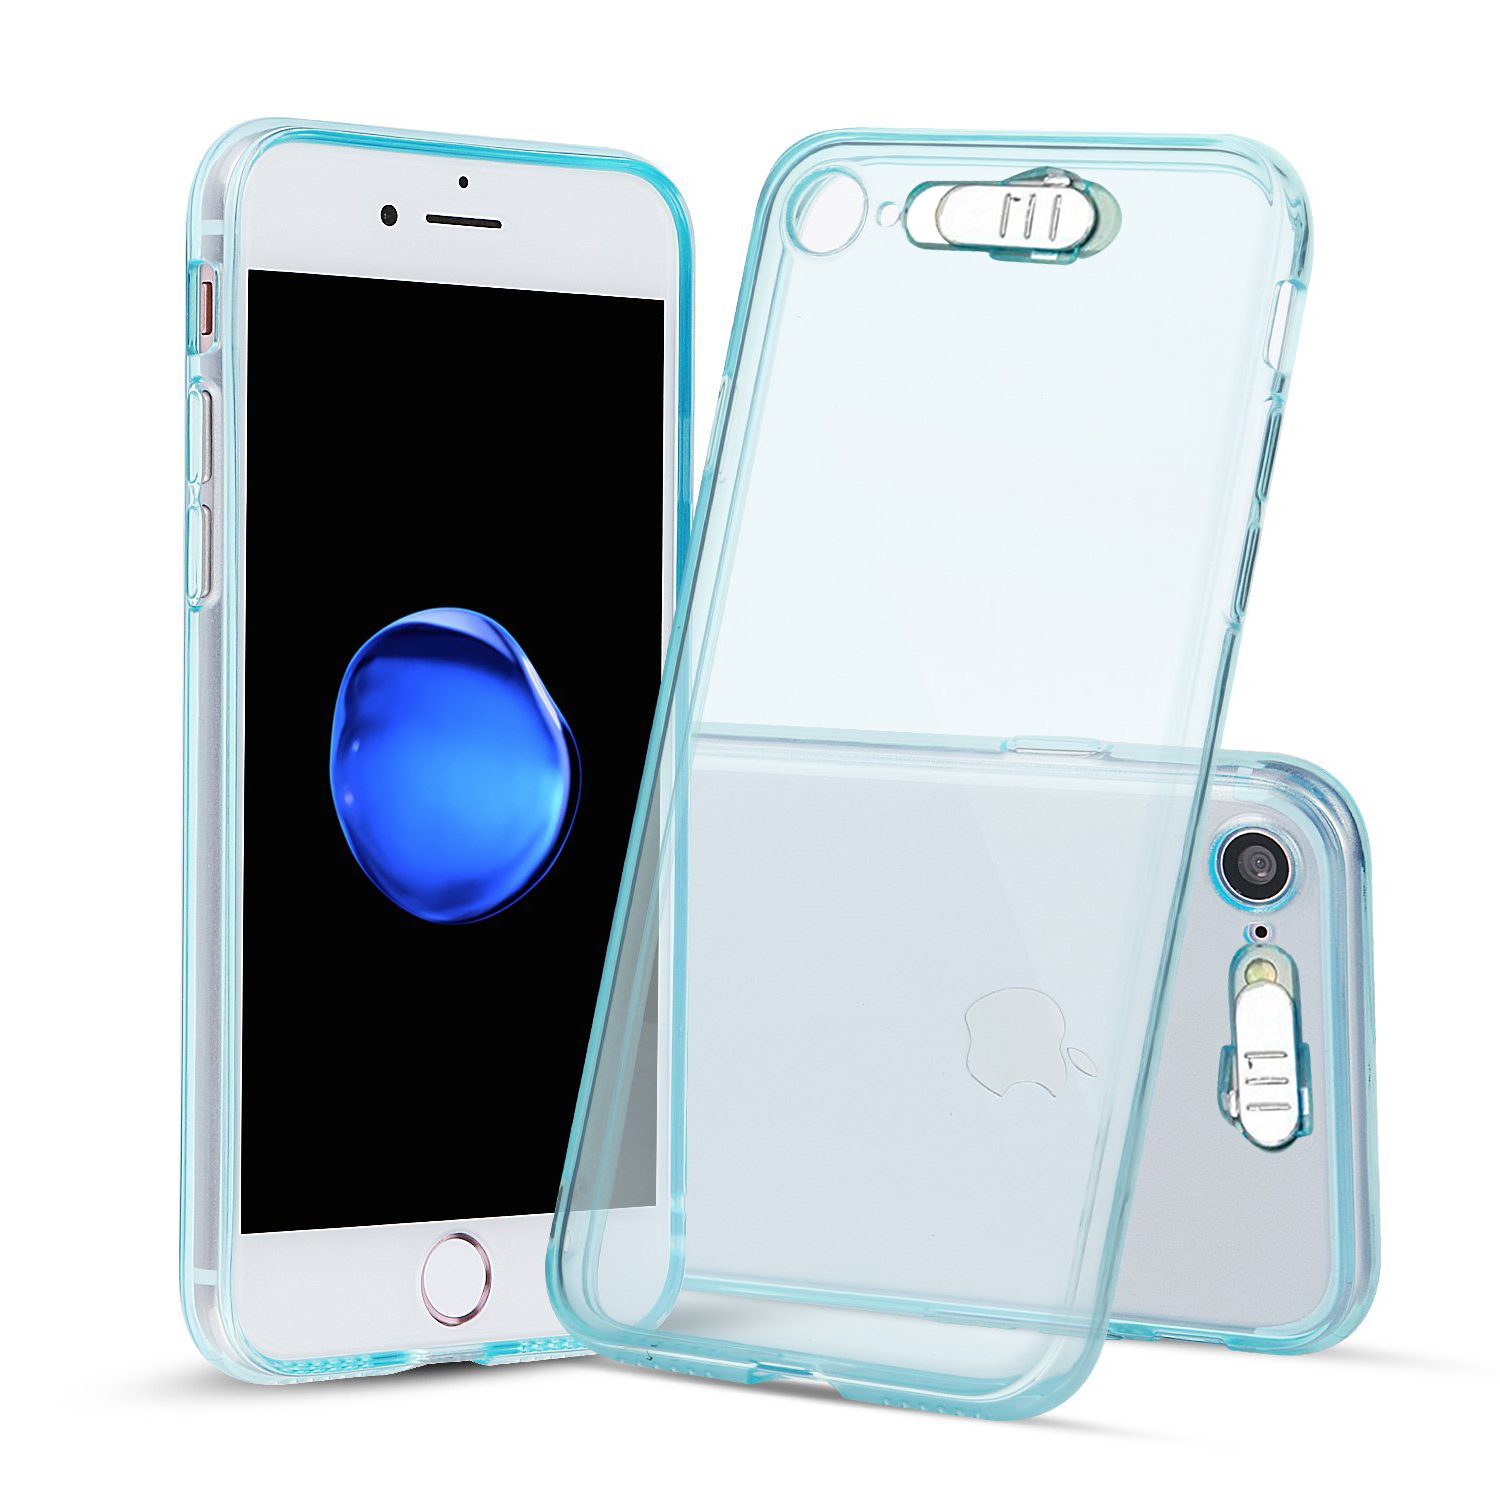 Made for Apple iPhone 8 / 7 / 6S / 6 LED TPU Case, [Blue] Slim Flexible Anti-shock [LED Light-Up Flashing] Crystal Silicone Protective TPU Gel Skin Case Cover by Redshield